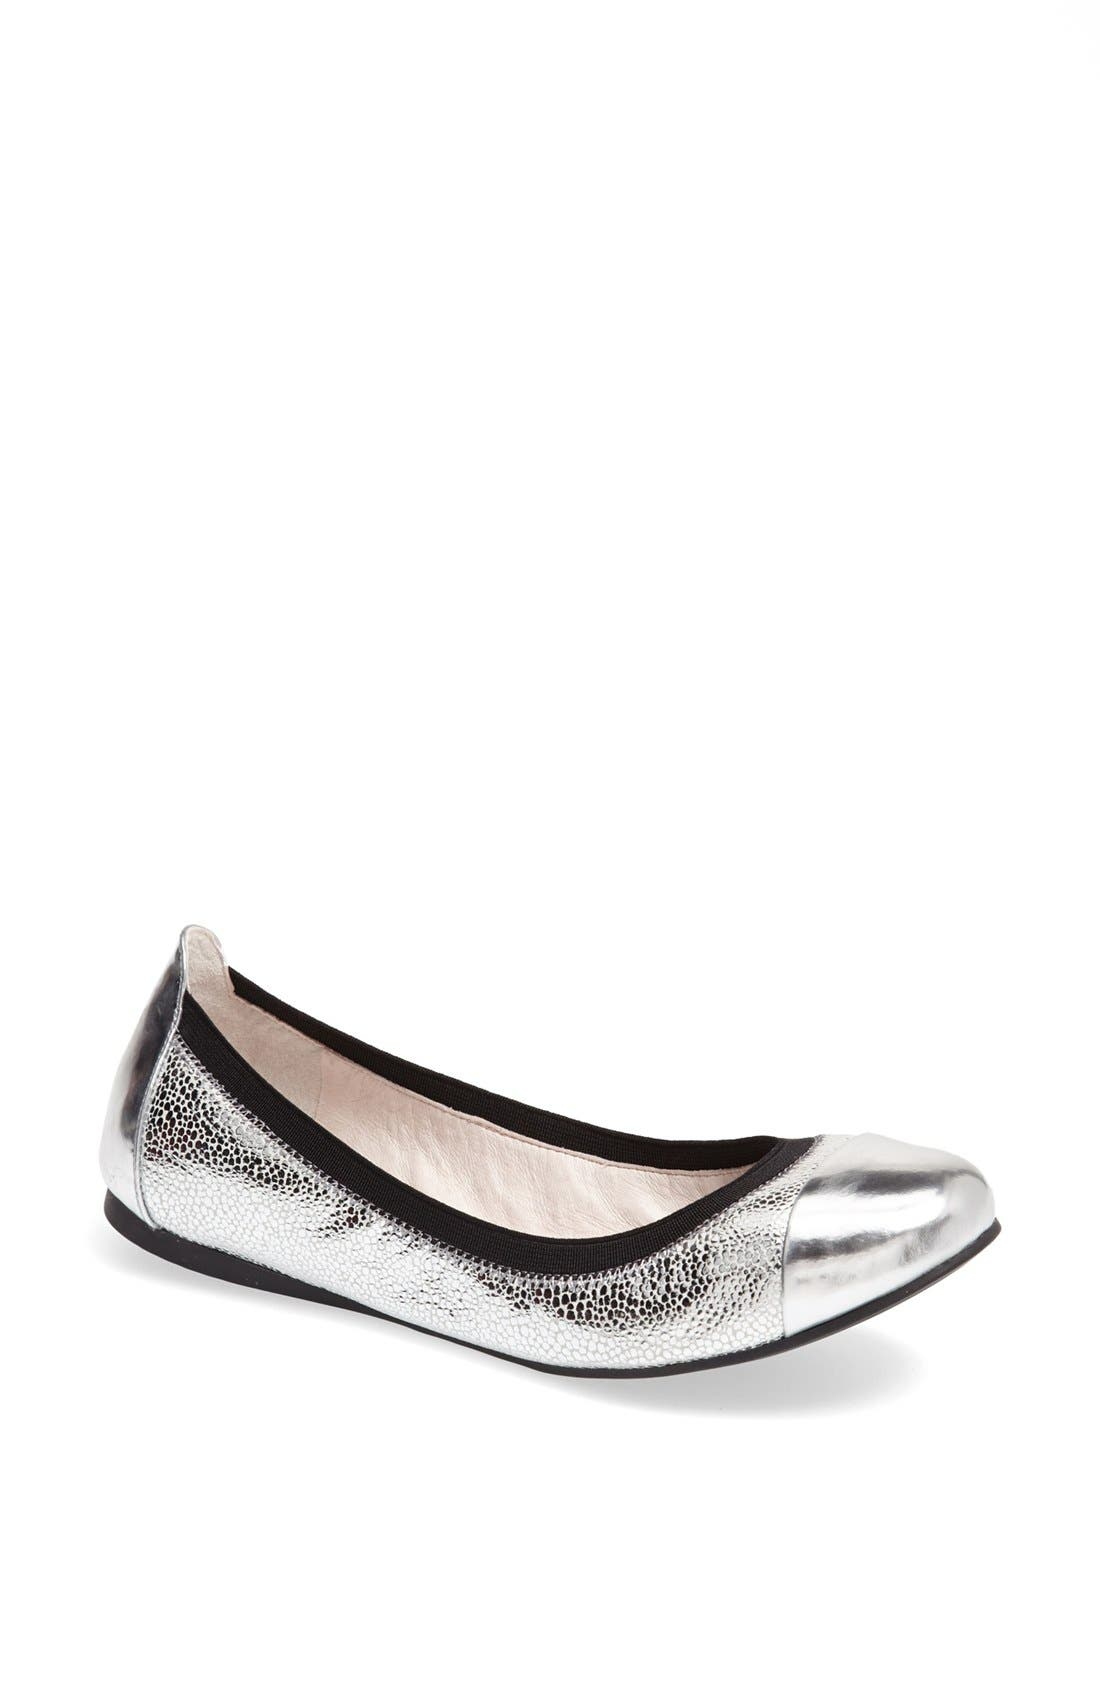 Main Image - Vince Camuto 'Elisee' Leather Ballet Flat